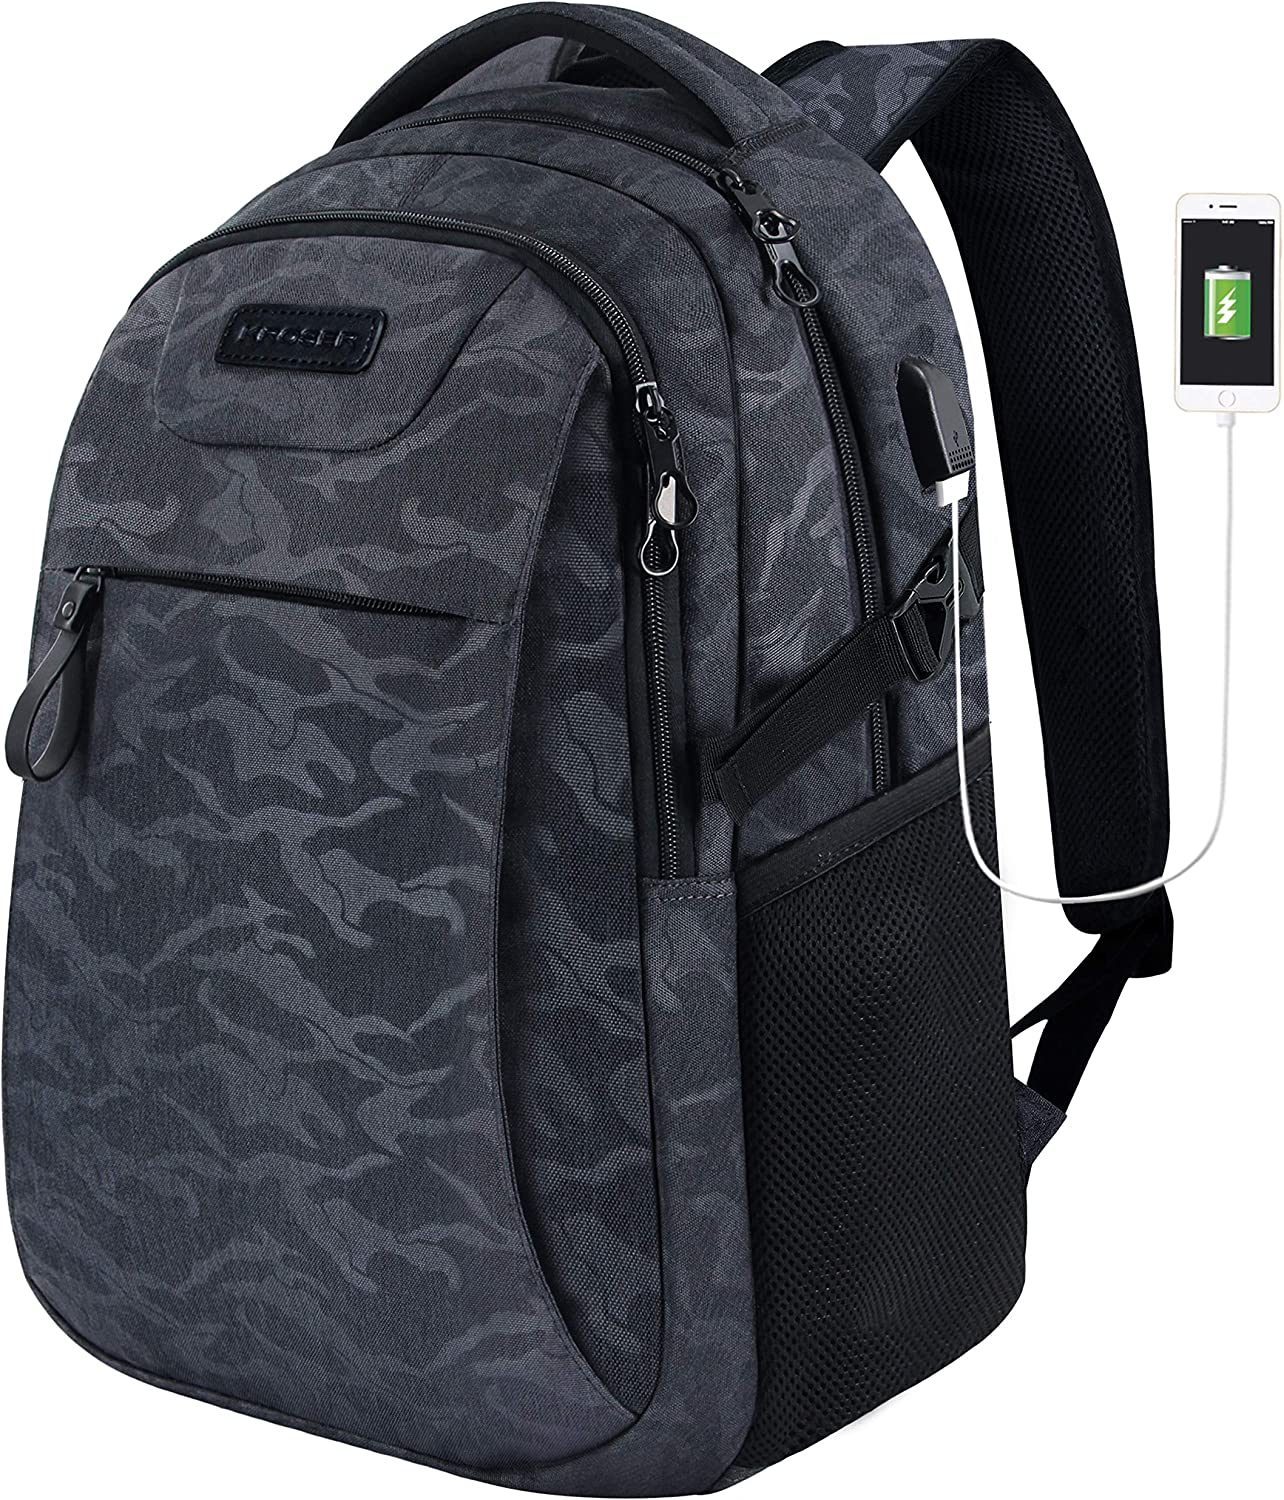 KROSER Laptop Backpack